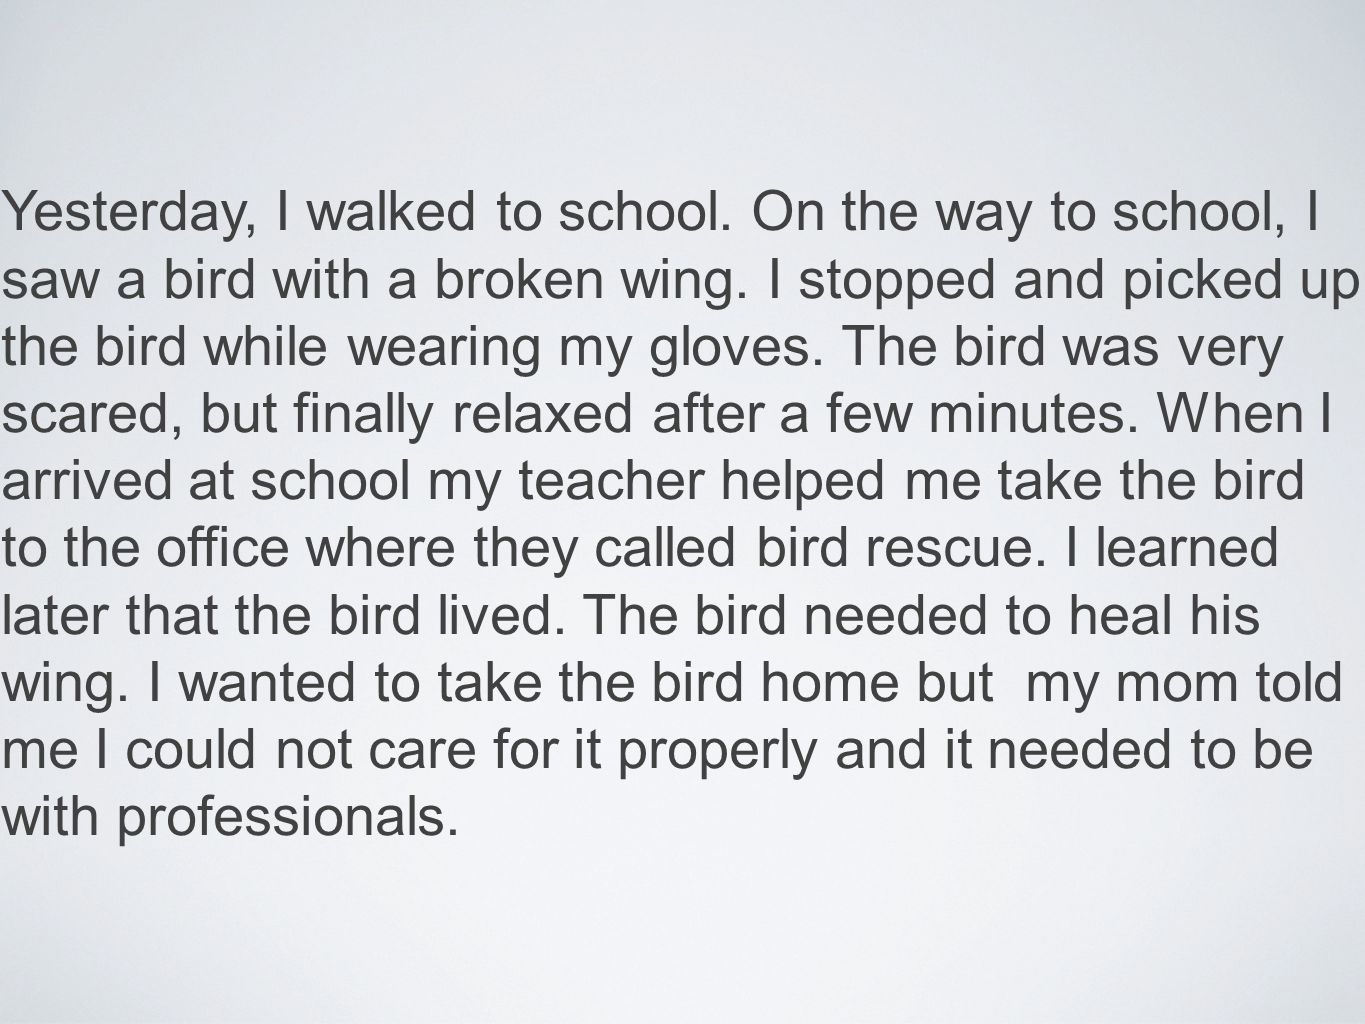 Yesterday, I walked to school. On the way to school, I saw a bird with a broken wing.